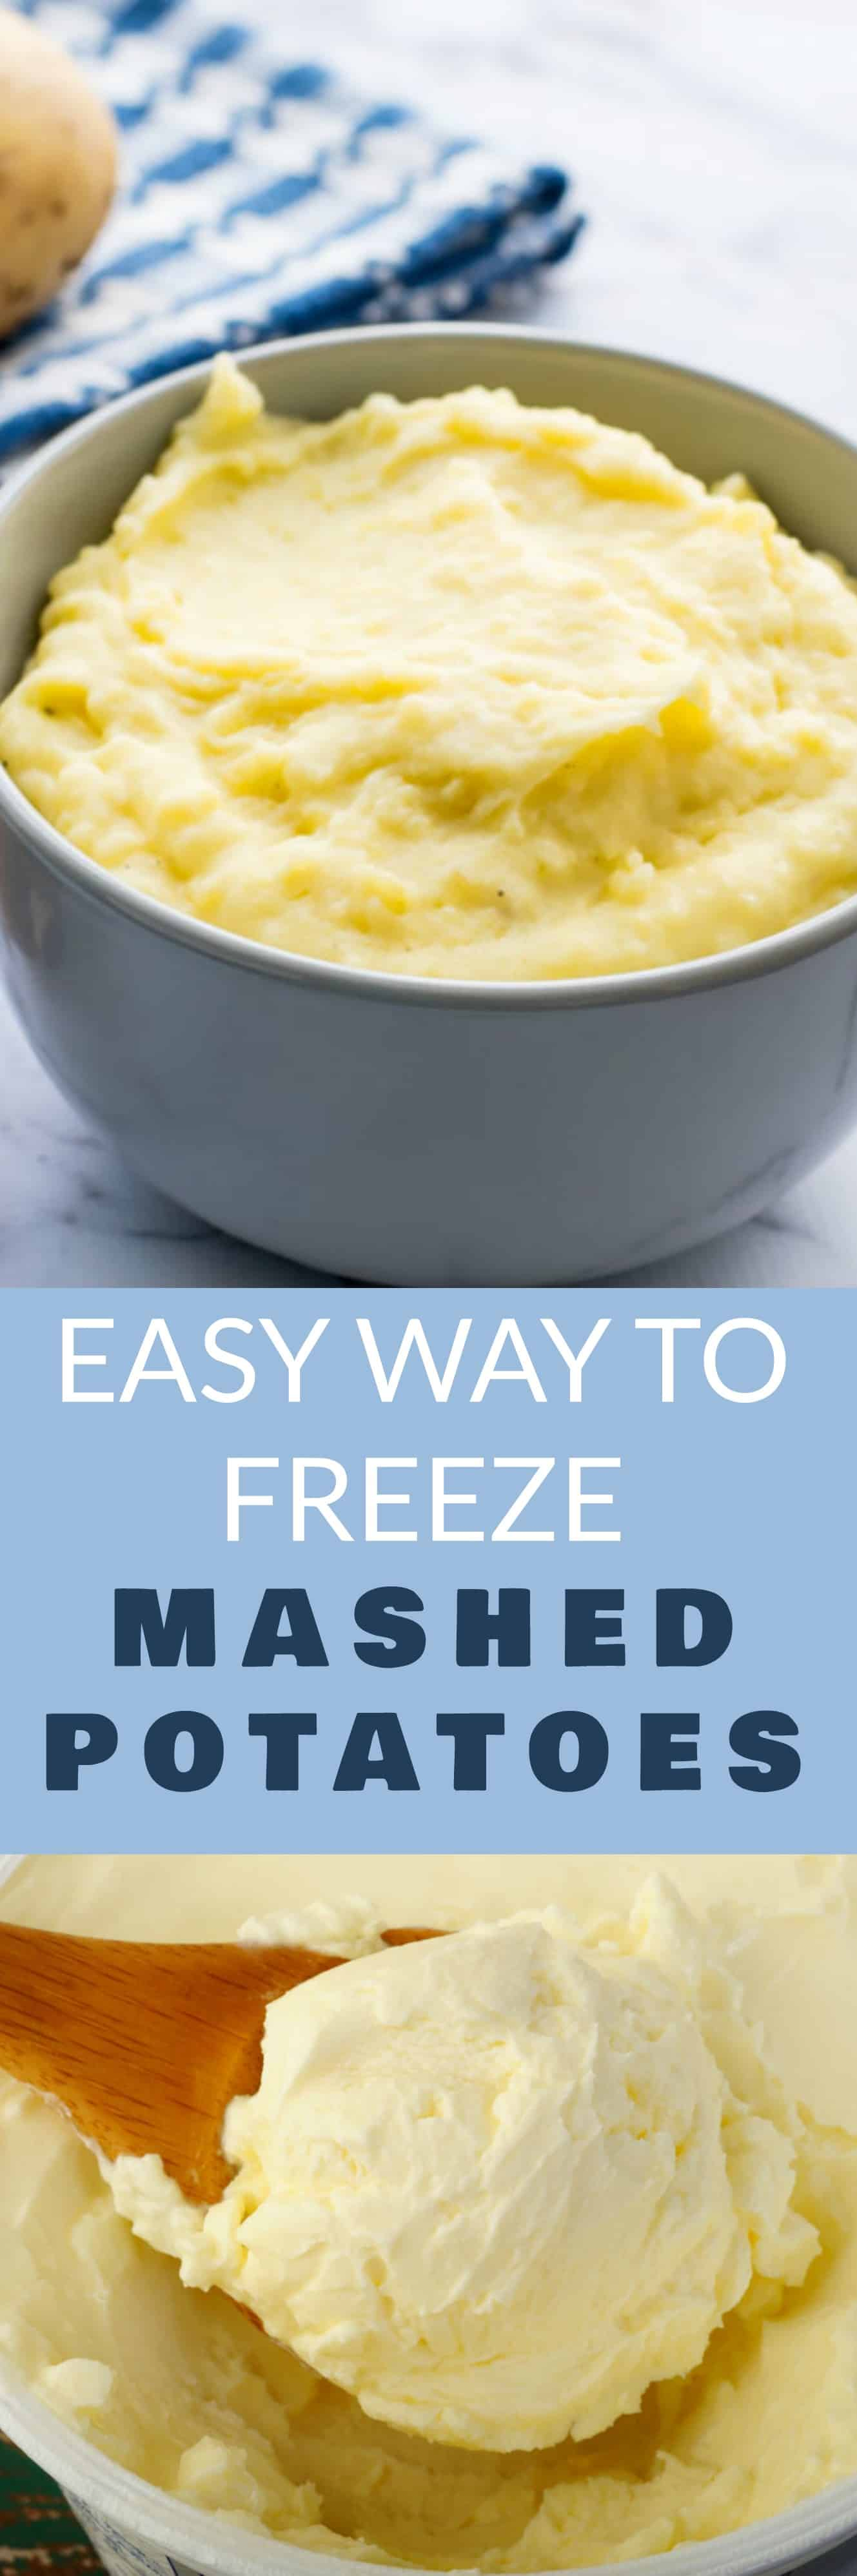 EASY way to FREEZE Mashed Potatoes! Follow these step by step instructions on how to freeze leftover mashed potatoes and get the magic trick to make them taste great! Never throw away leftover Thanksgiving or holiday potatoes again! I always freeze mashed potatoes to serve for quick weeknight dinners!